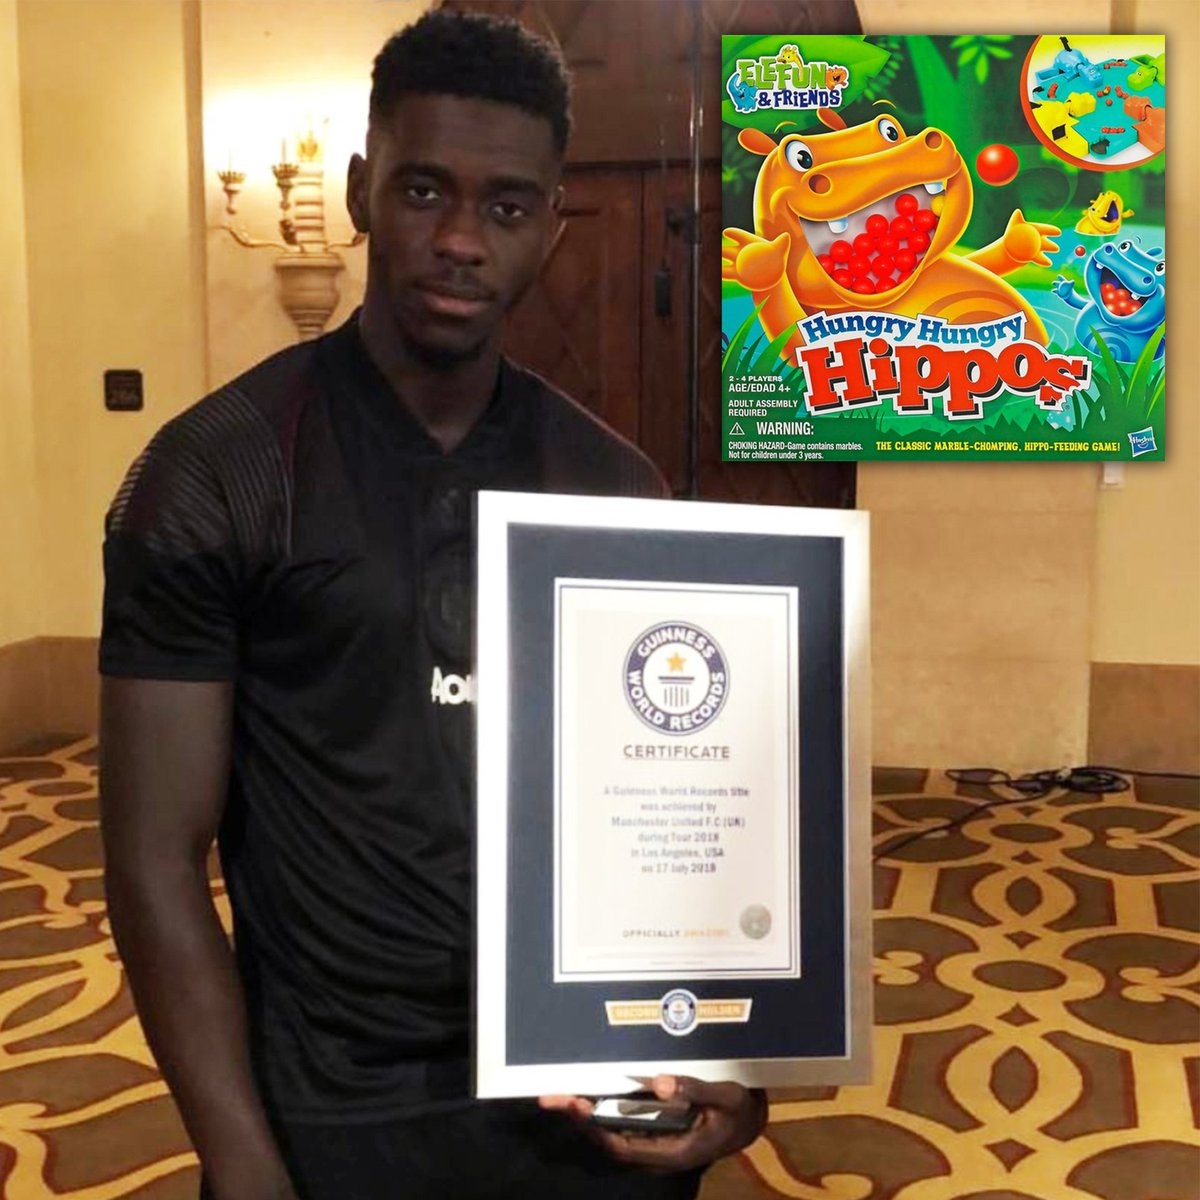 Manchester United's Axel Tuanzebe broke the Guinness World Record for the fastest time to clear a game of Hungry Hungry Hippos ever, at just over 17 seconds! 👀😂